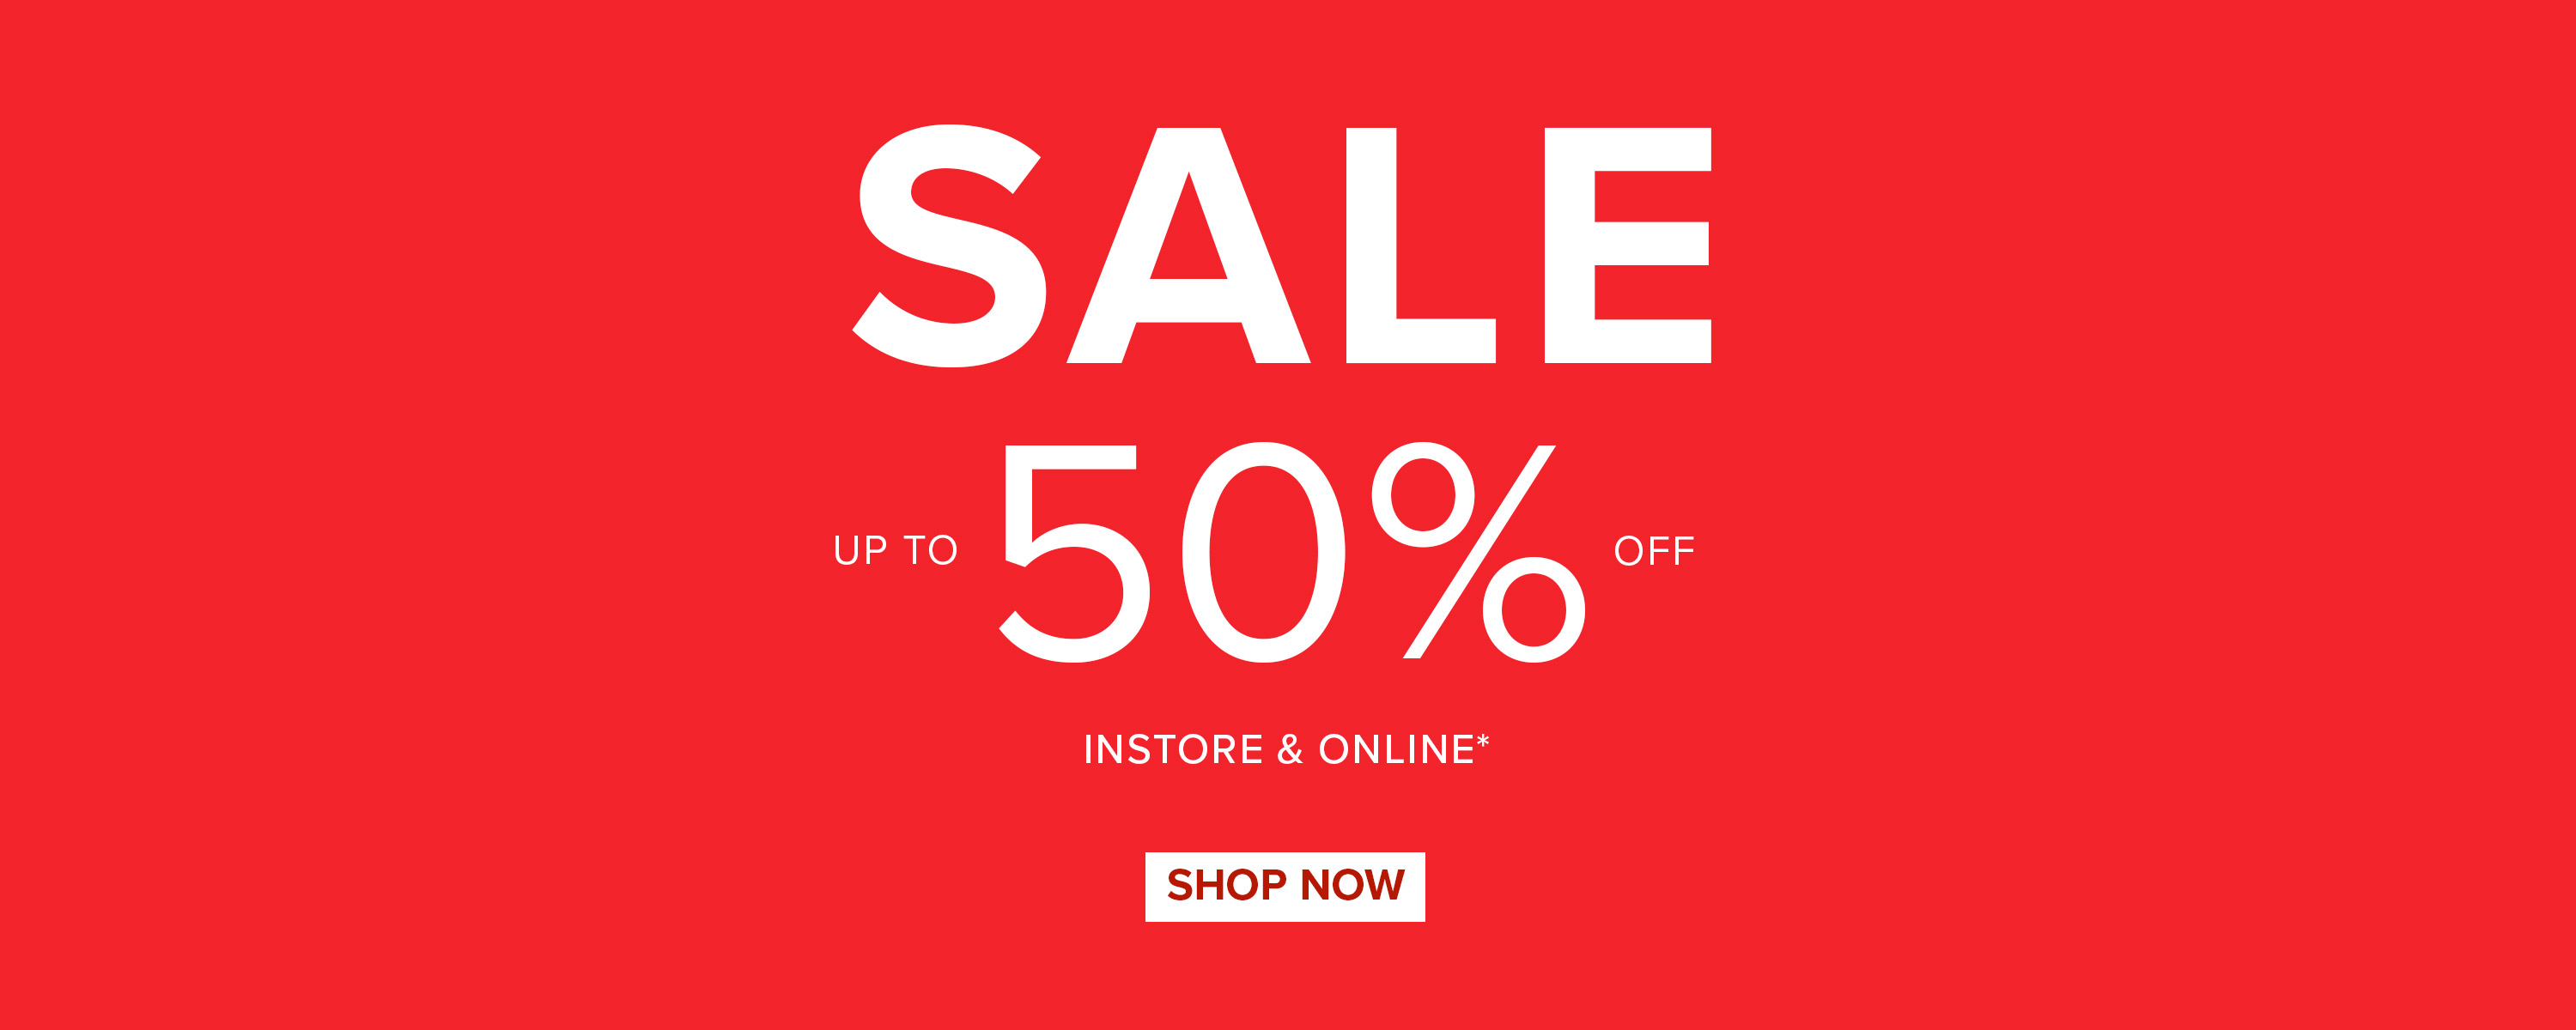 Jane Norman Jane Norman: Sale up to 50% off ladies clothing